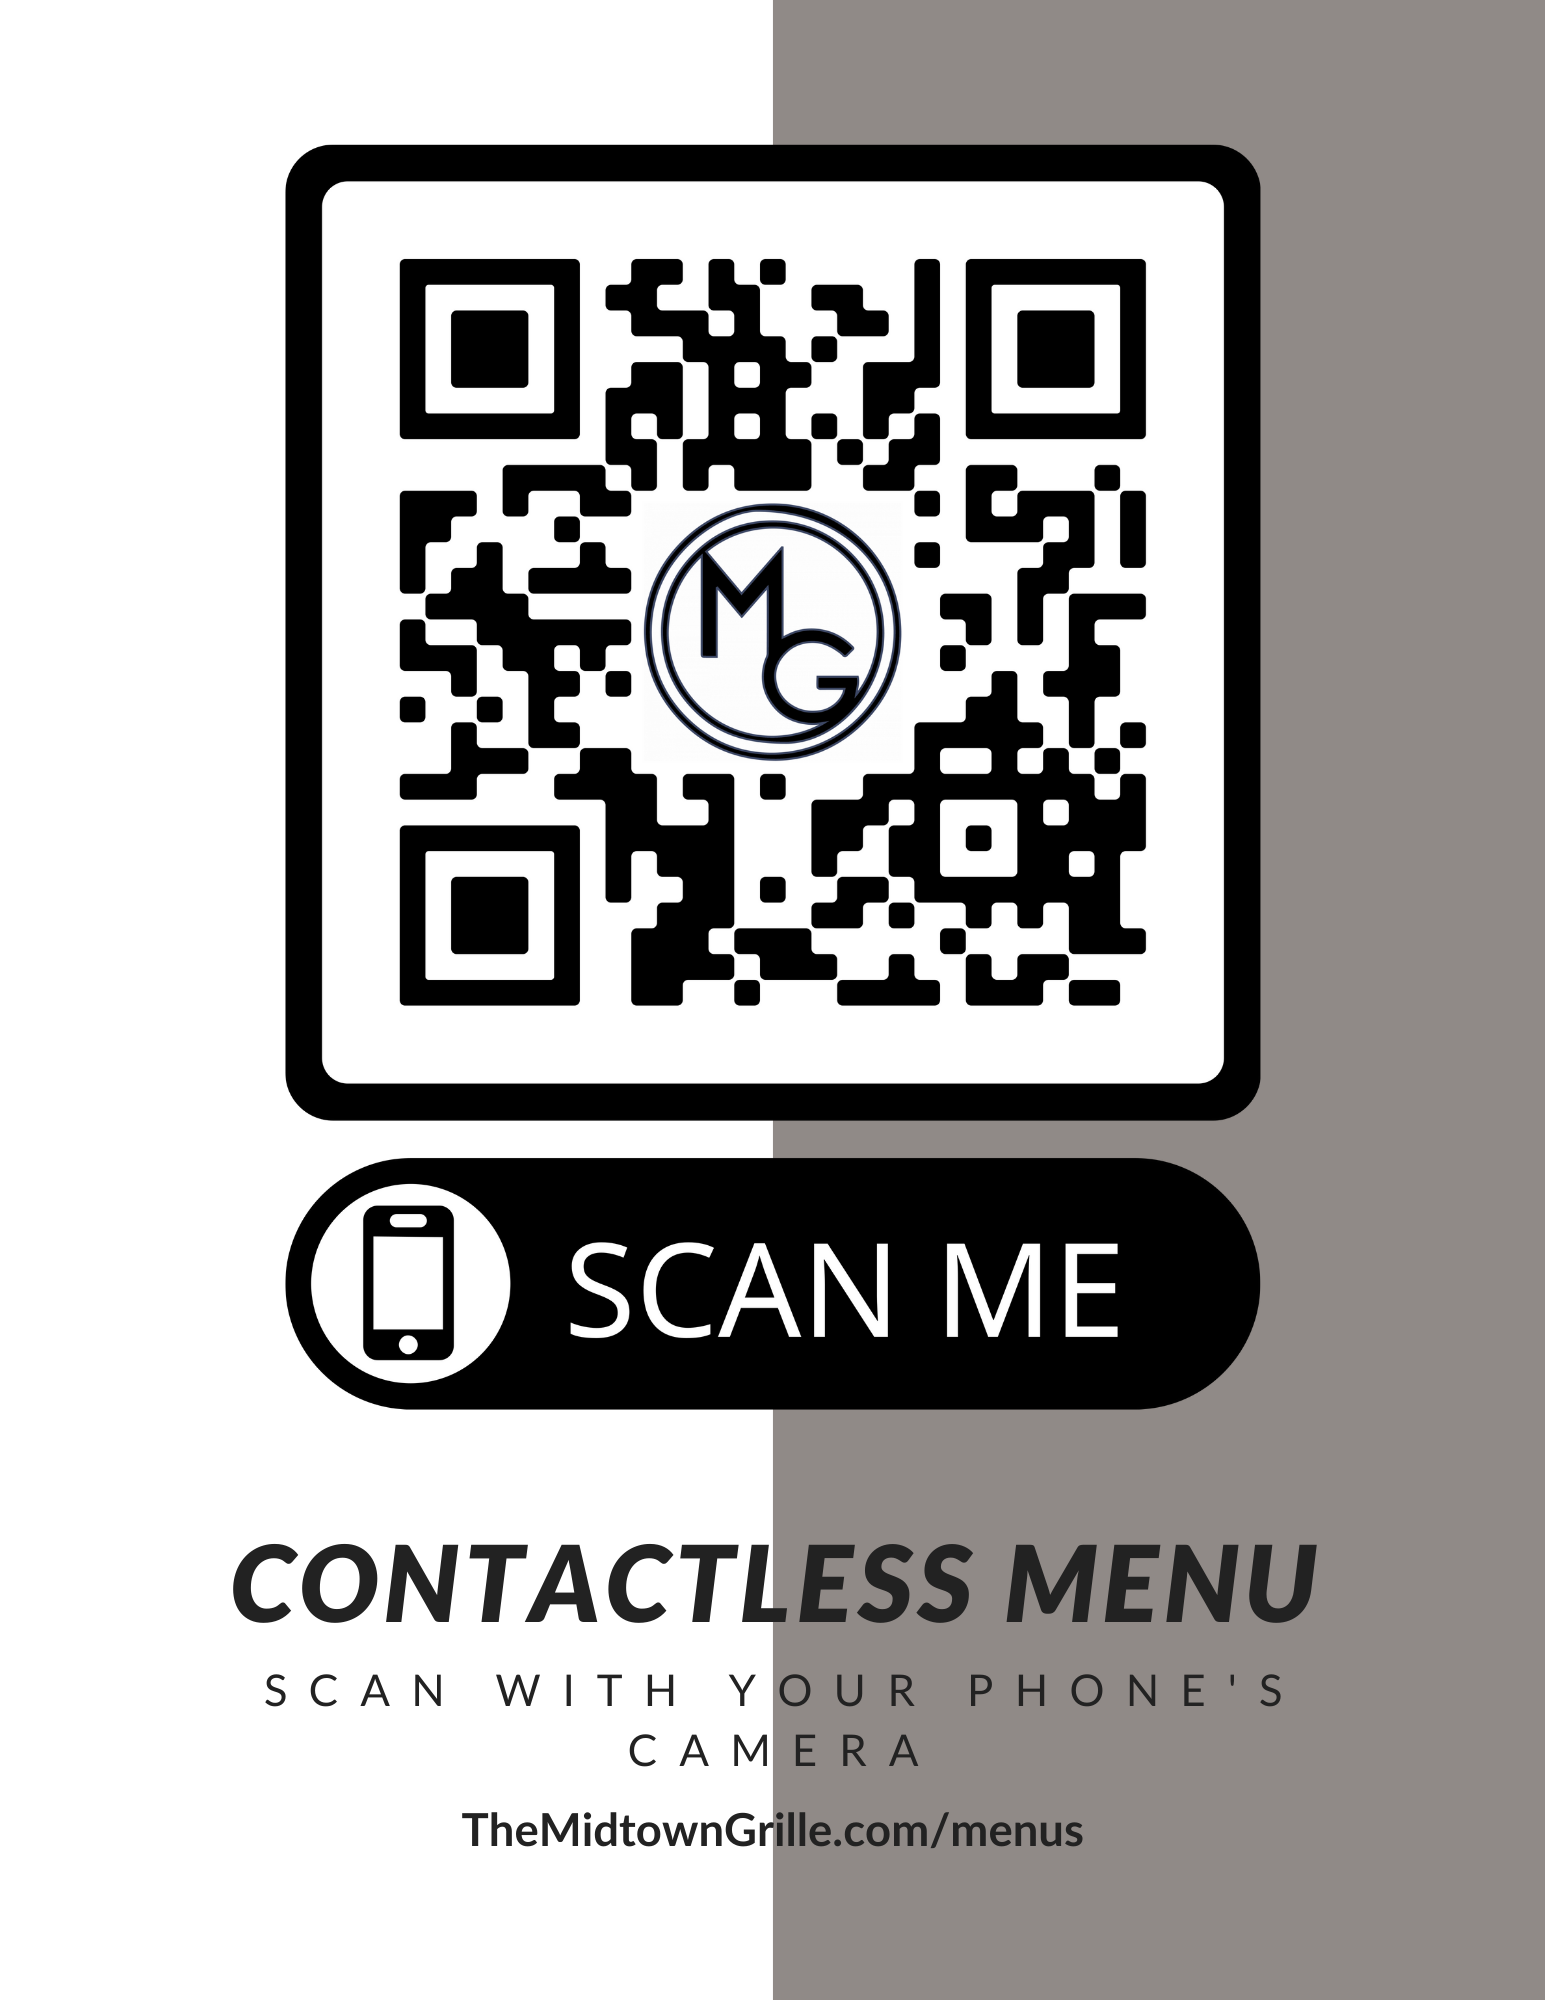 Midtown Grille - Contactless Menu